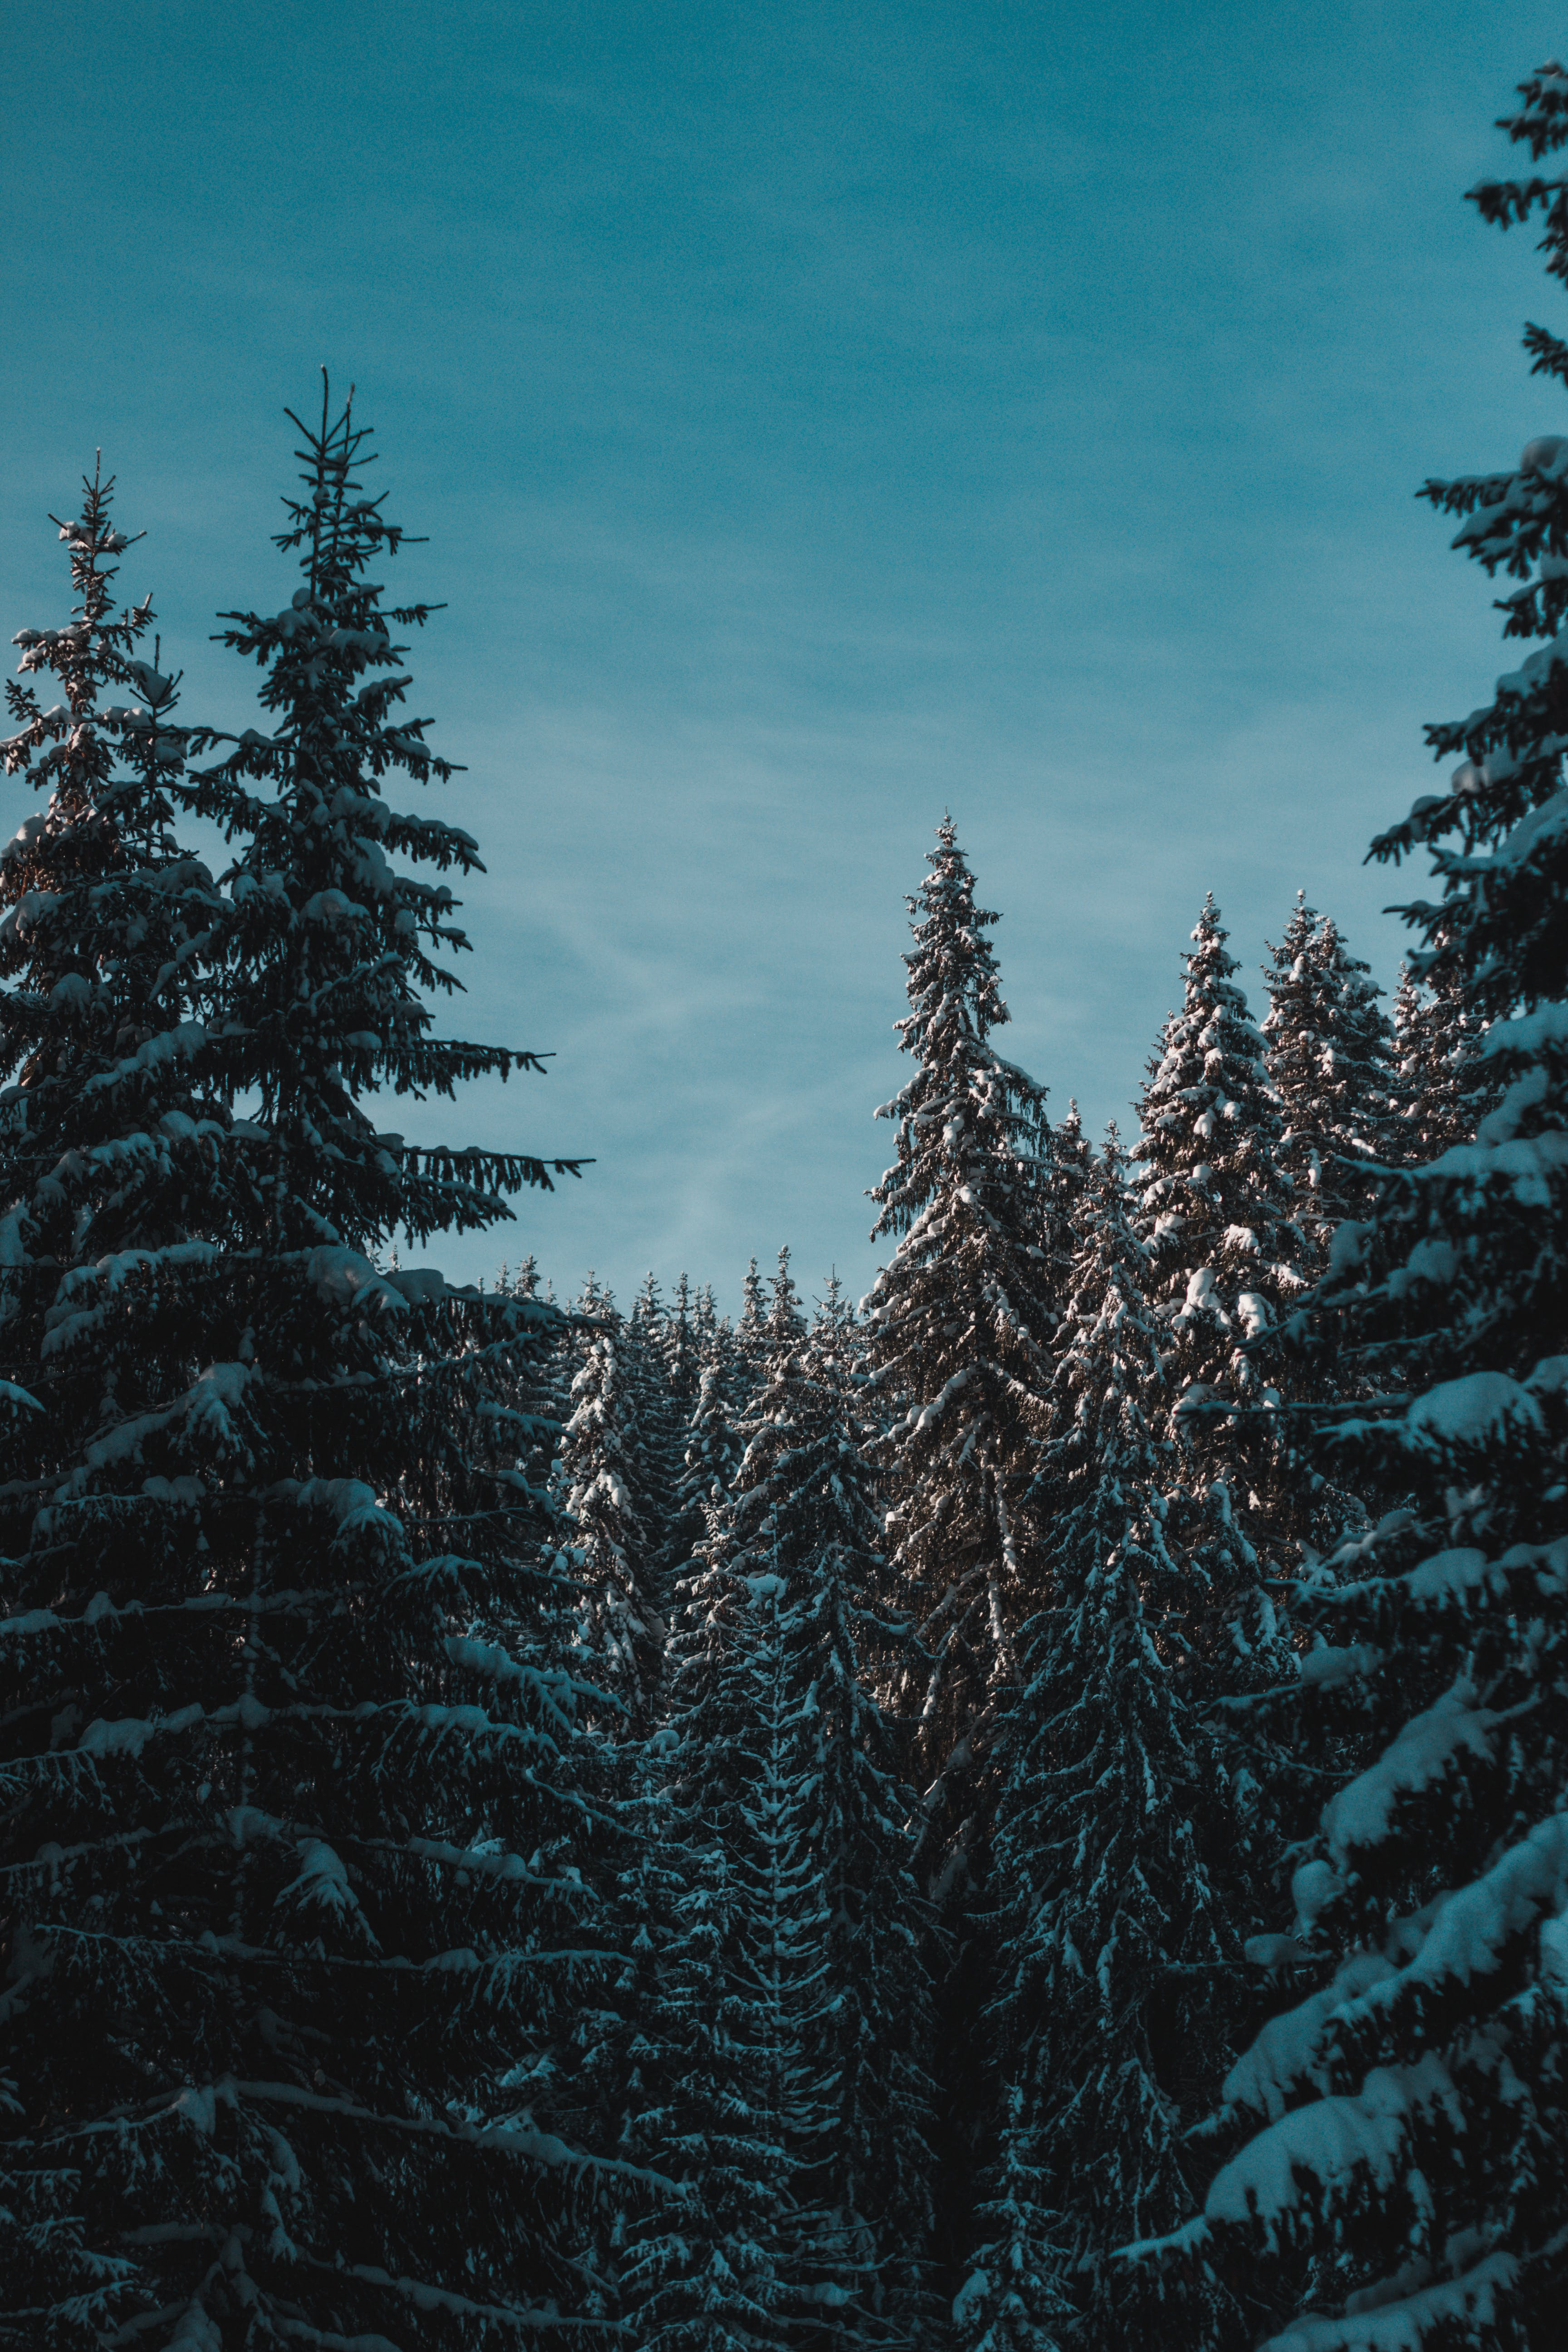 Photo of Pine Trees With Snow Under Blue Sky